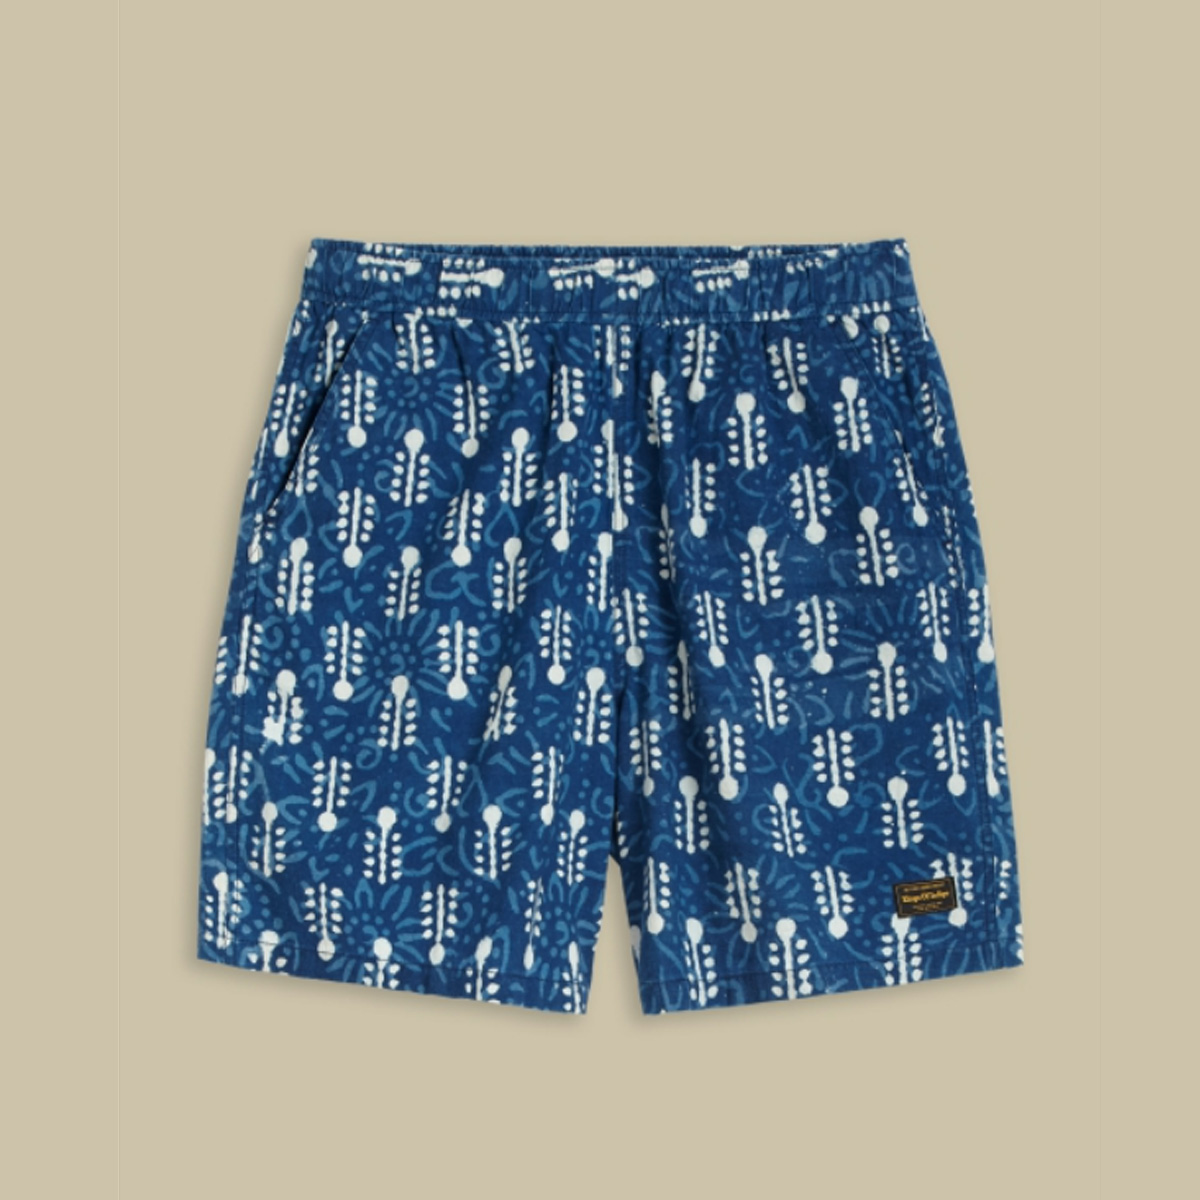 Kings of Indigo- Bidatsu woodblock dyed shorts